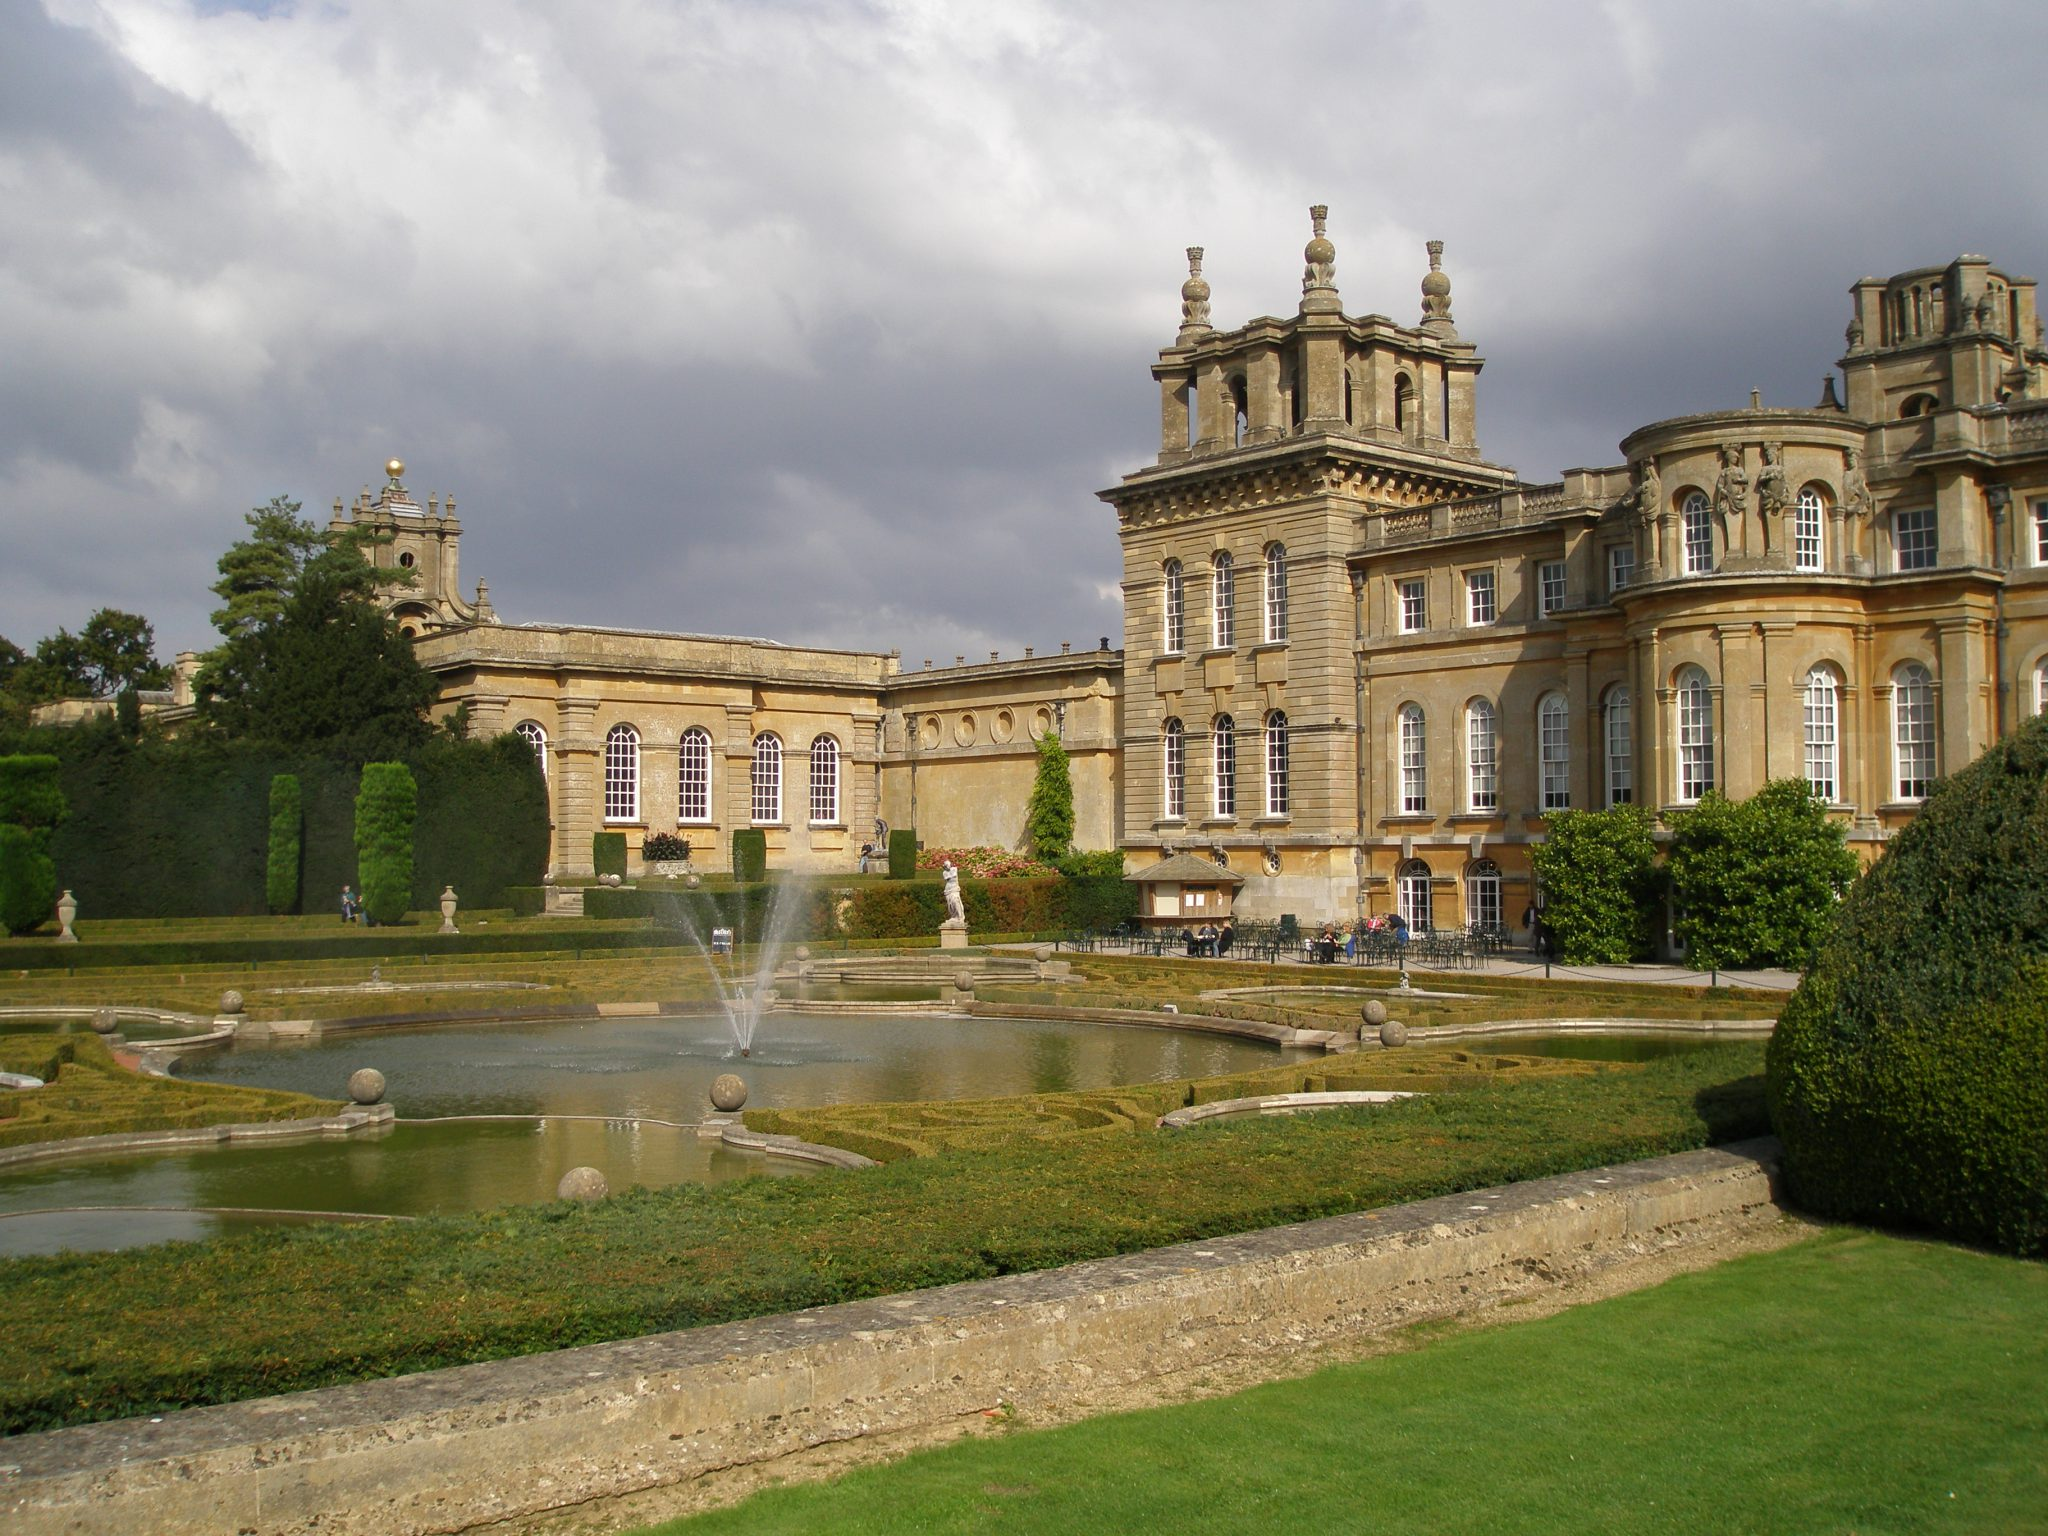 This is just one wing of the enormous Blenheim Palace, in Oxfordshire. As you can see, it's a BIT grander a place than Chartwell is. Winston was born here in 1874. I took this picture during on Sept. 24, 2008...which seems like a million years ago.